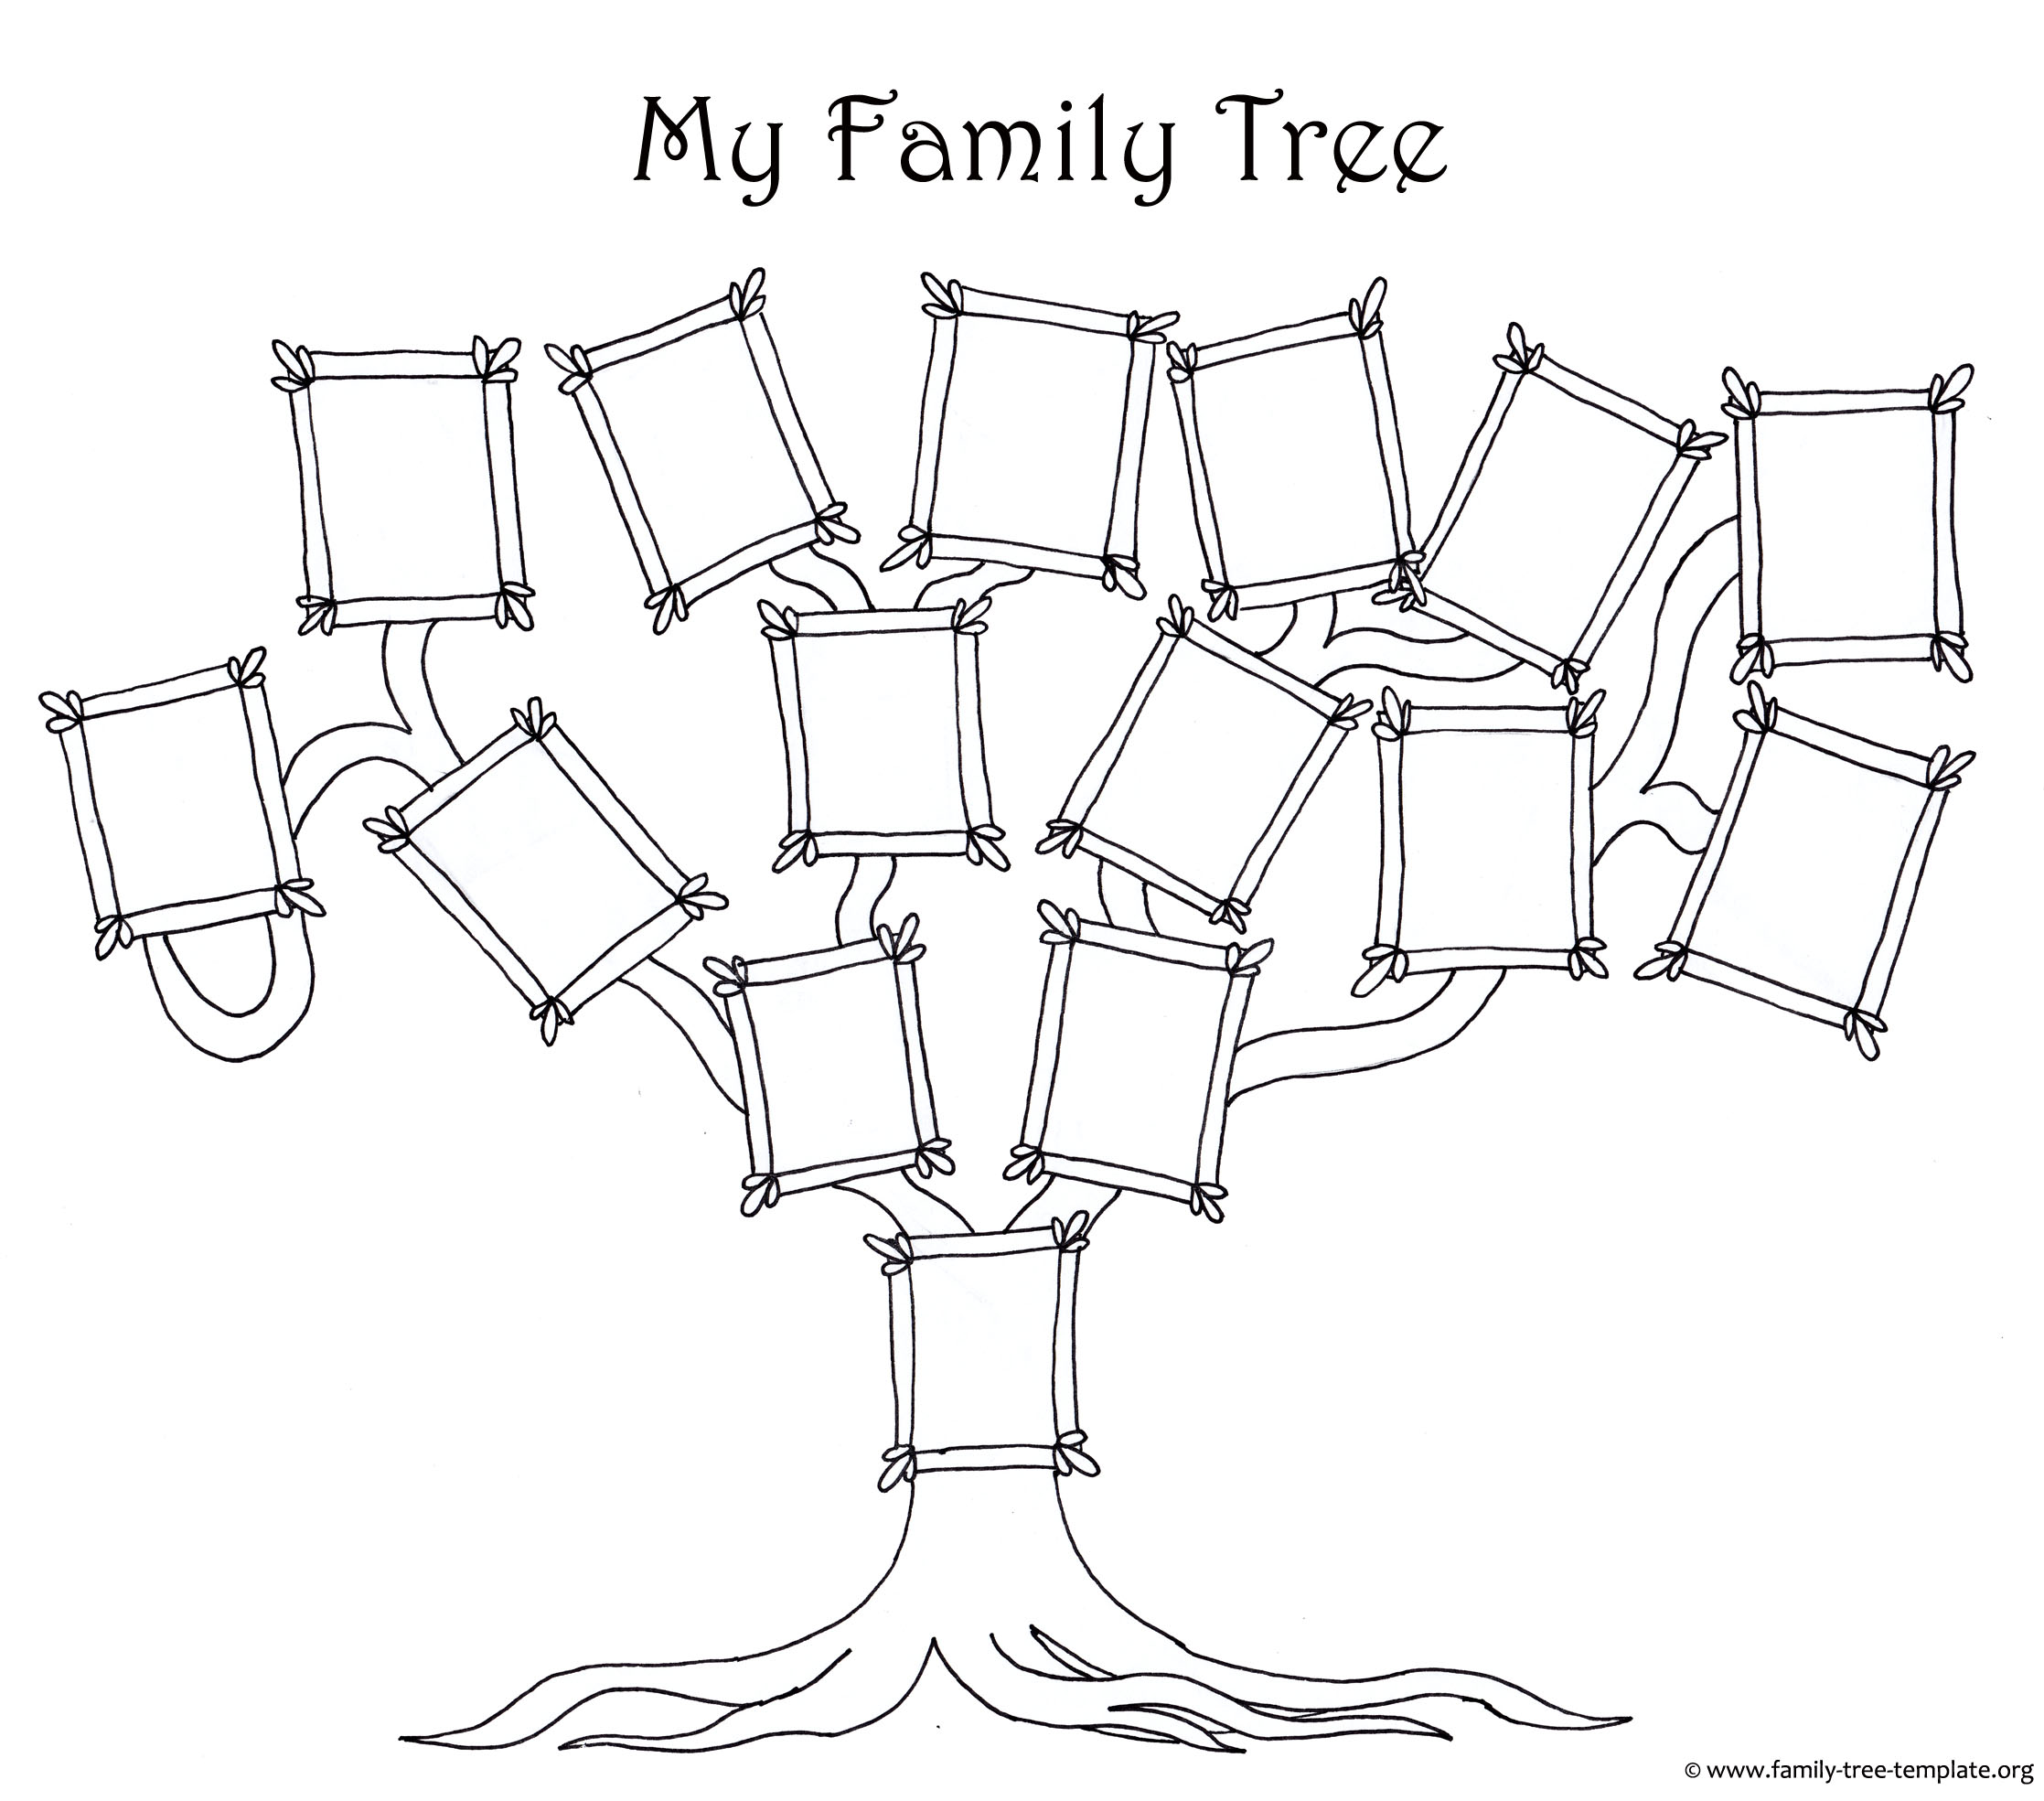 Free family tree template designs for making ancestry charts for Preschool family tree template